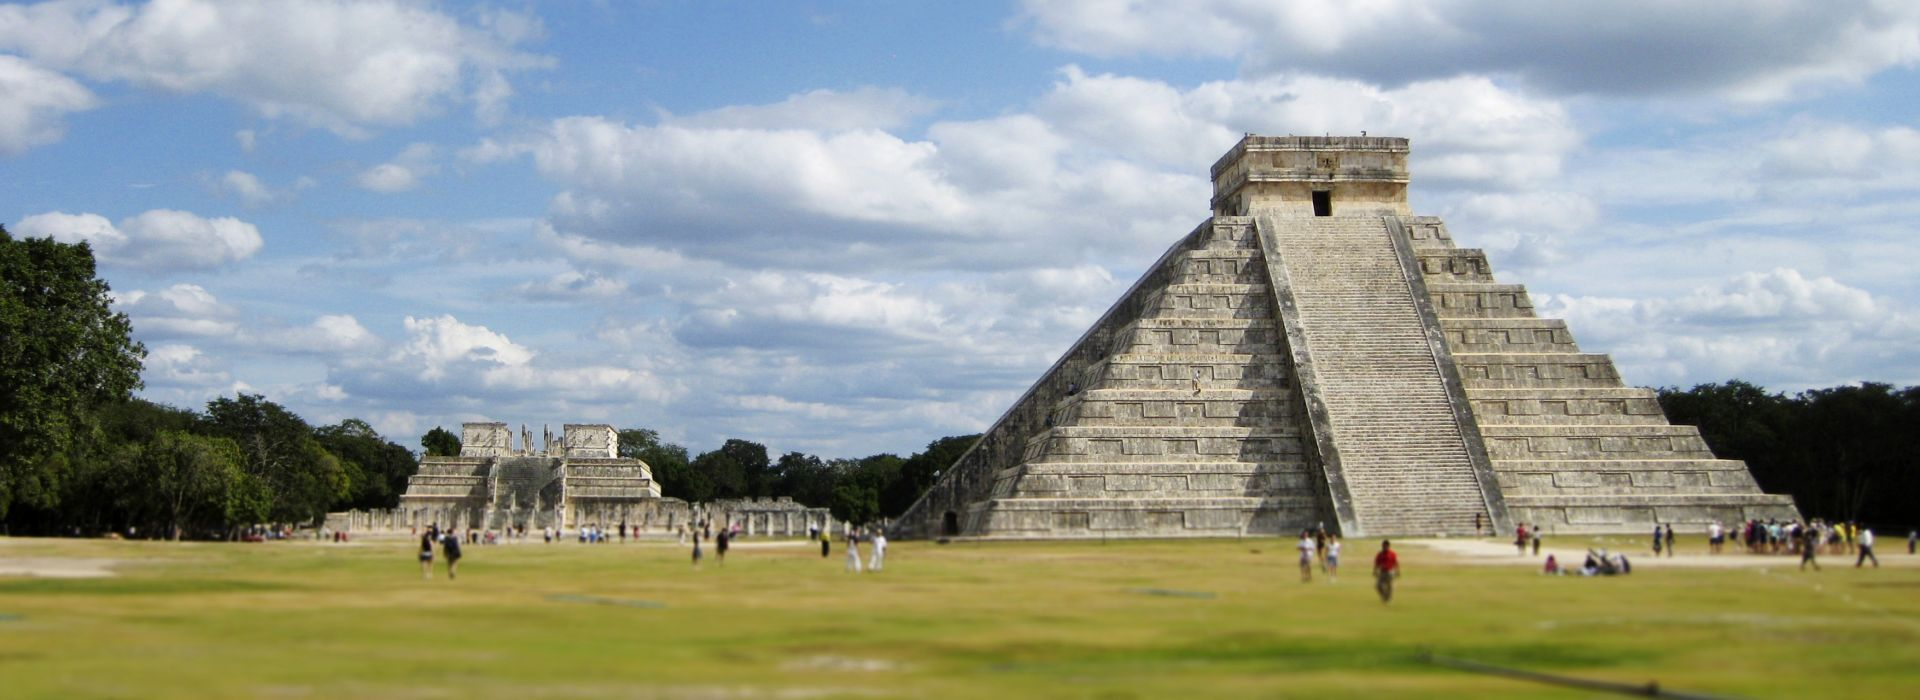 Adventure and sport Tours in Mexico City